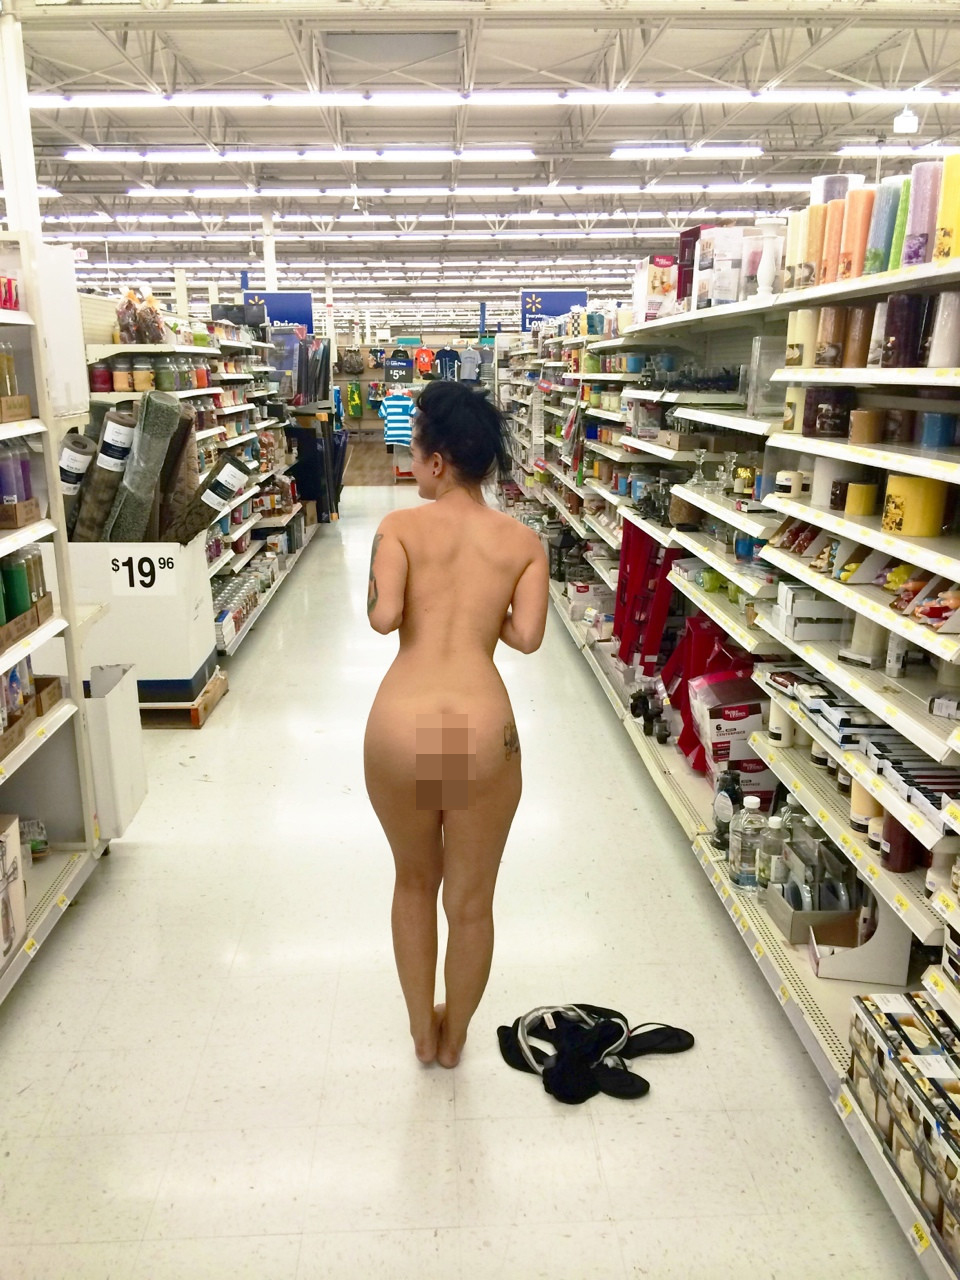 People walmart nude uncensored of